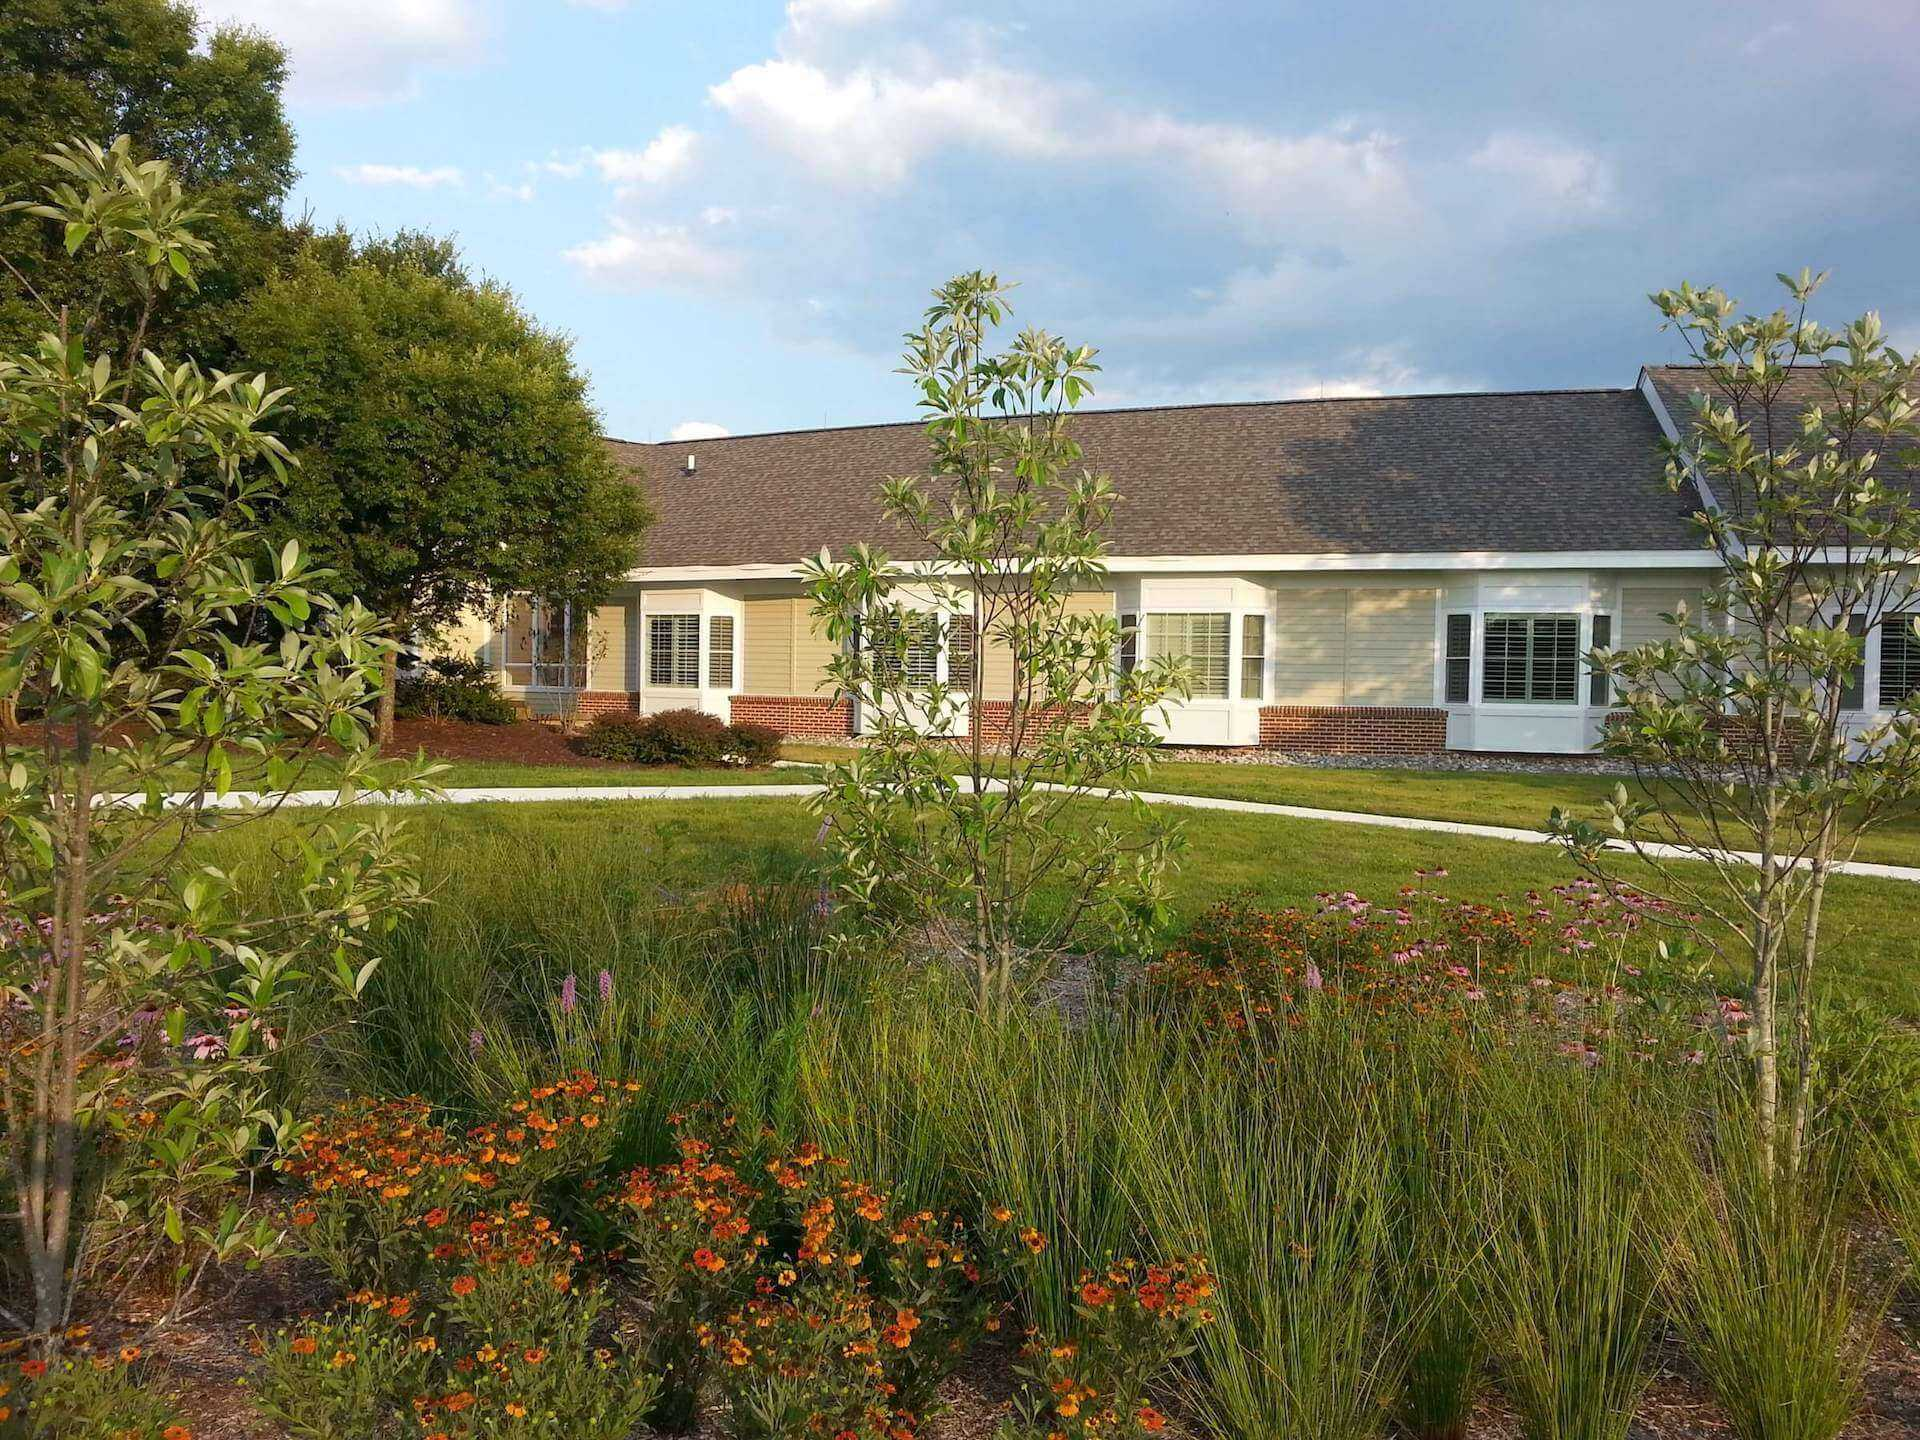 somerford building beyond the landscaping